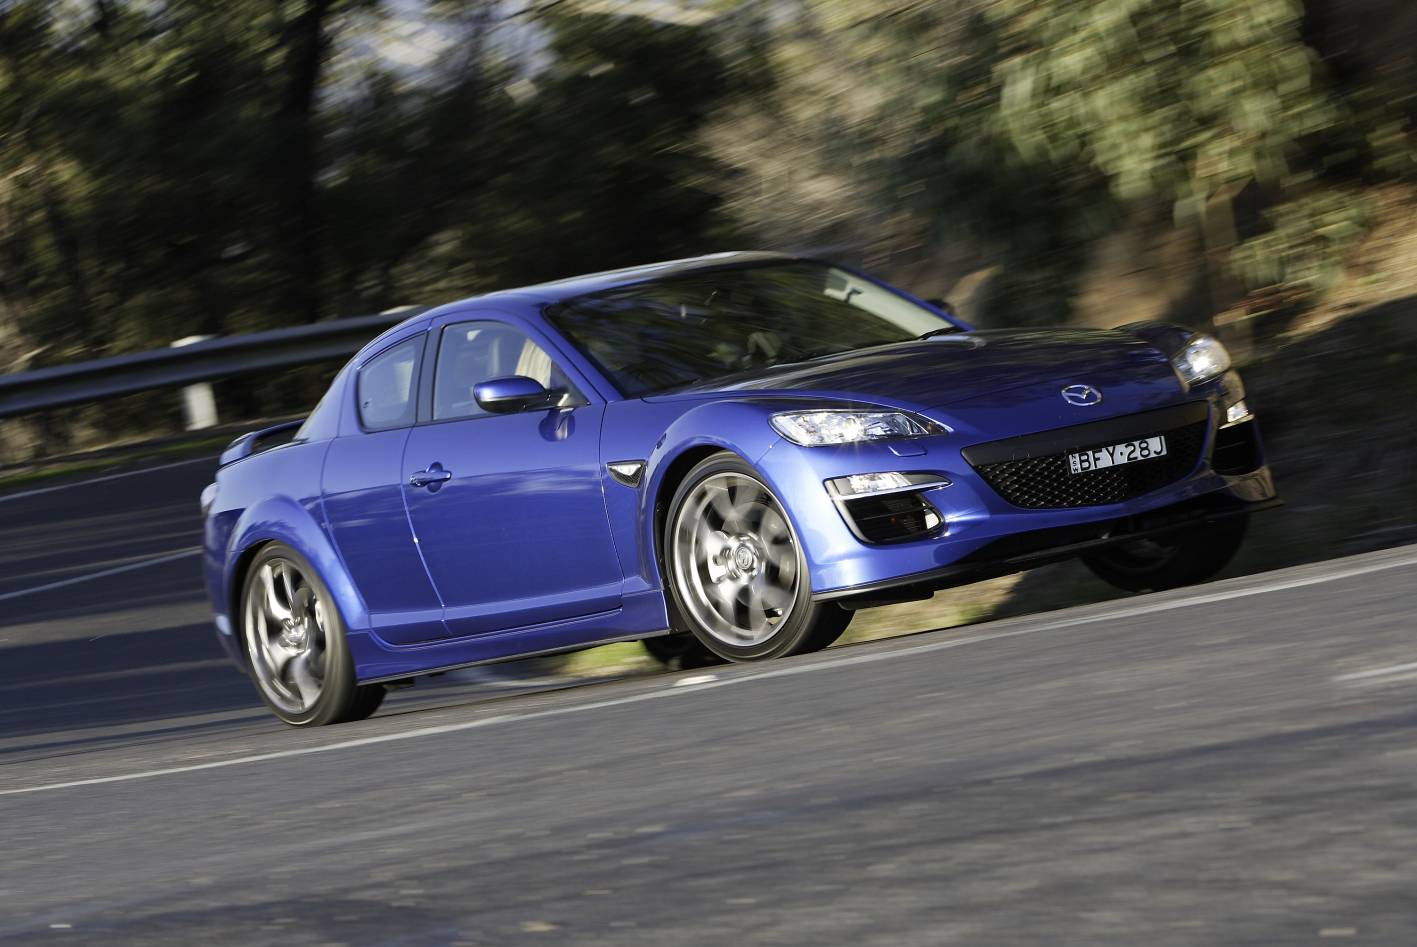 Declining Sales Spell An End For Mazda's RX-8 Sports Car